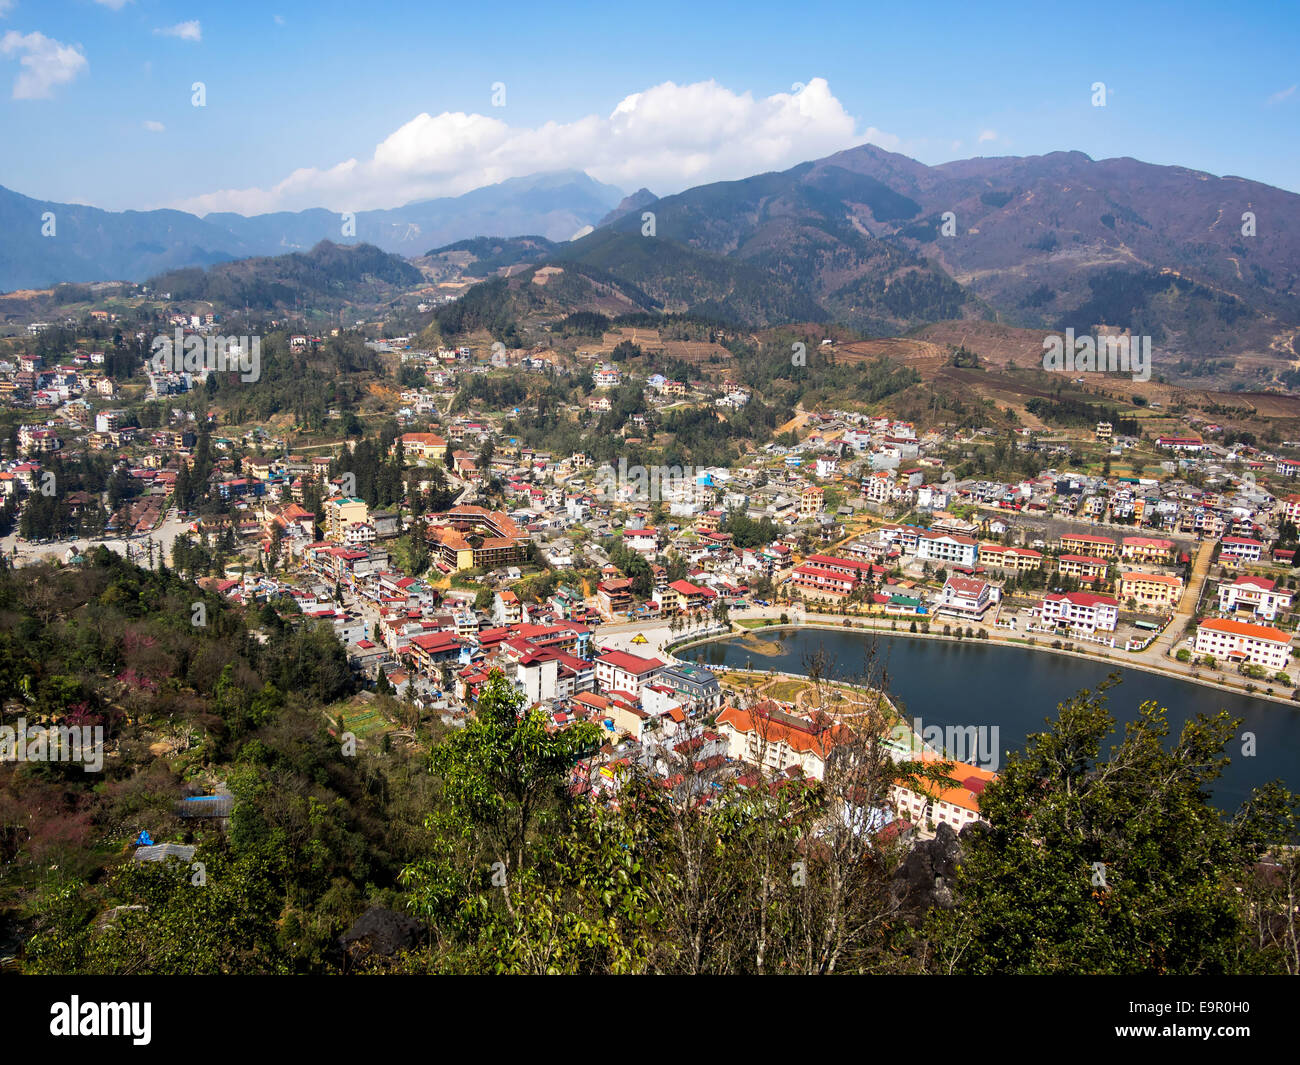 General view of Sapa Town, Lao Cai, North Vietnam. Stock Photo